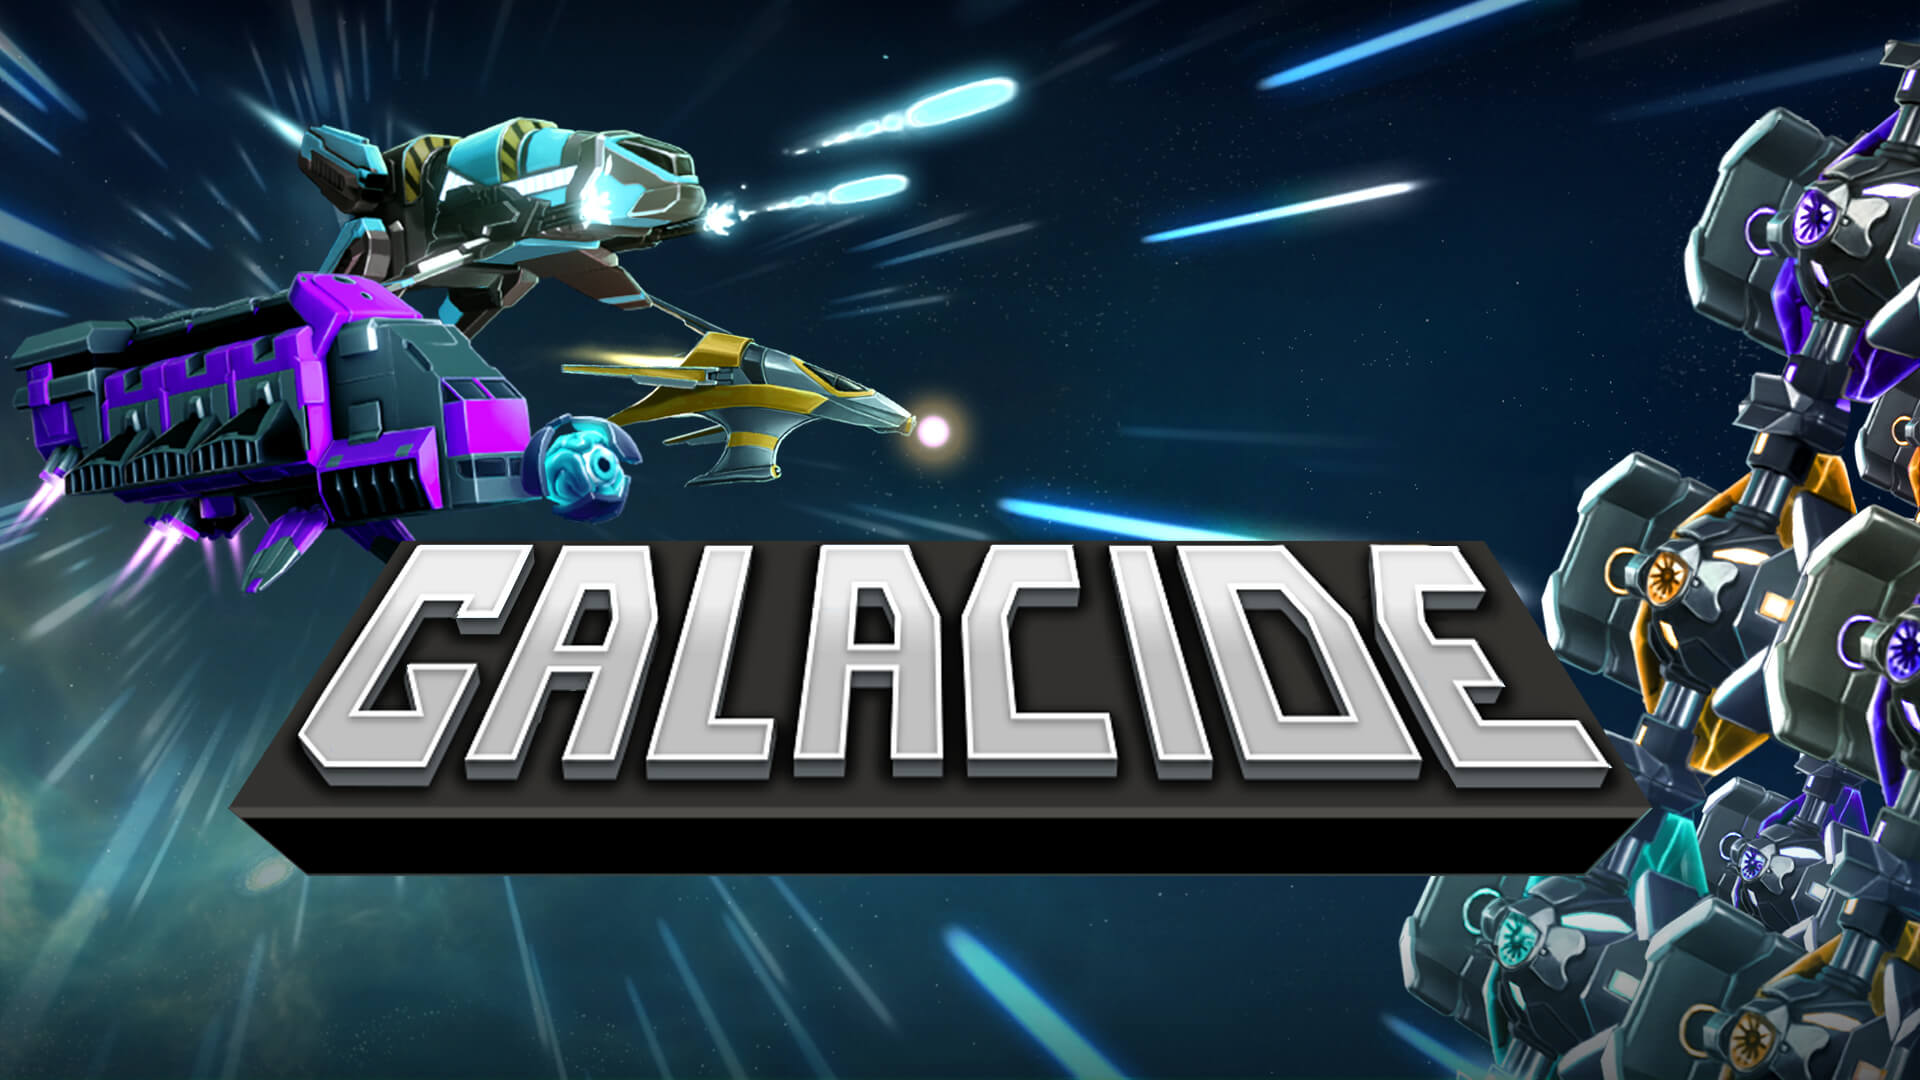 Galacide Free PC Download